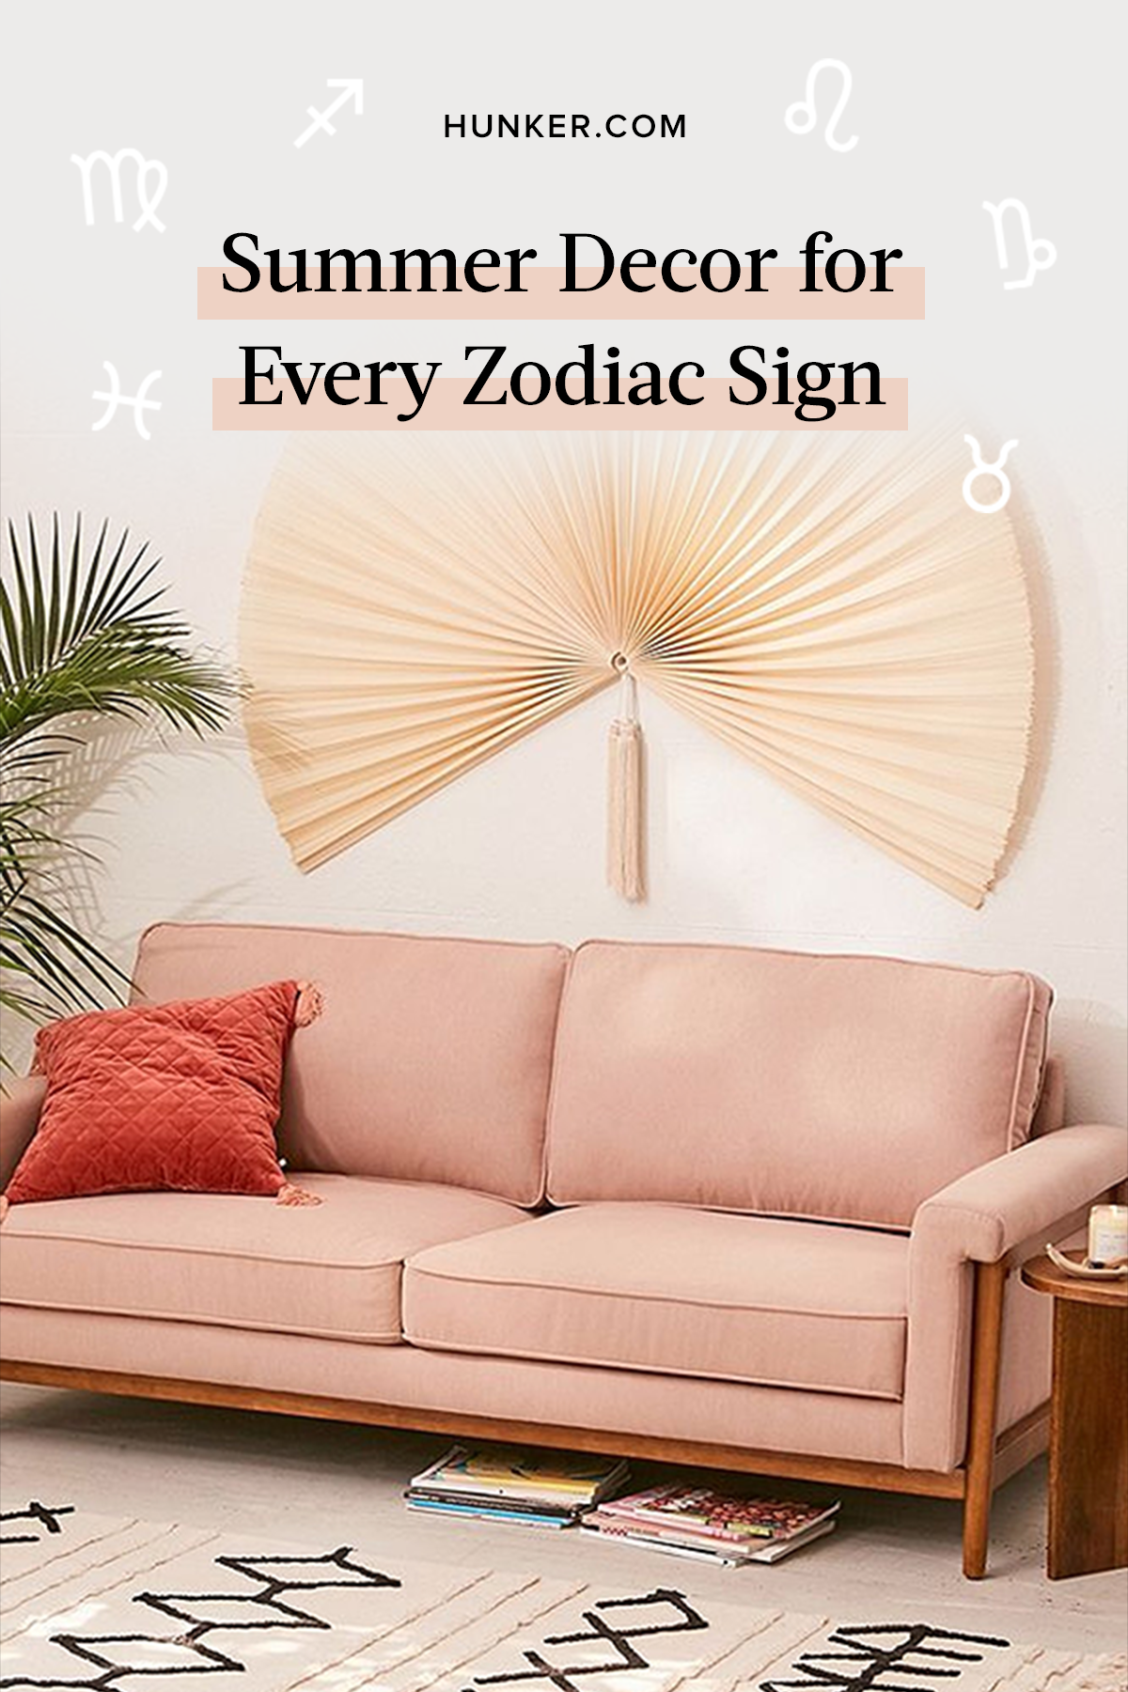 Design Your Own Living Room Free: Decor-O-Scopes: Sizzling Summer Buys For Every Zodiac Sign